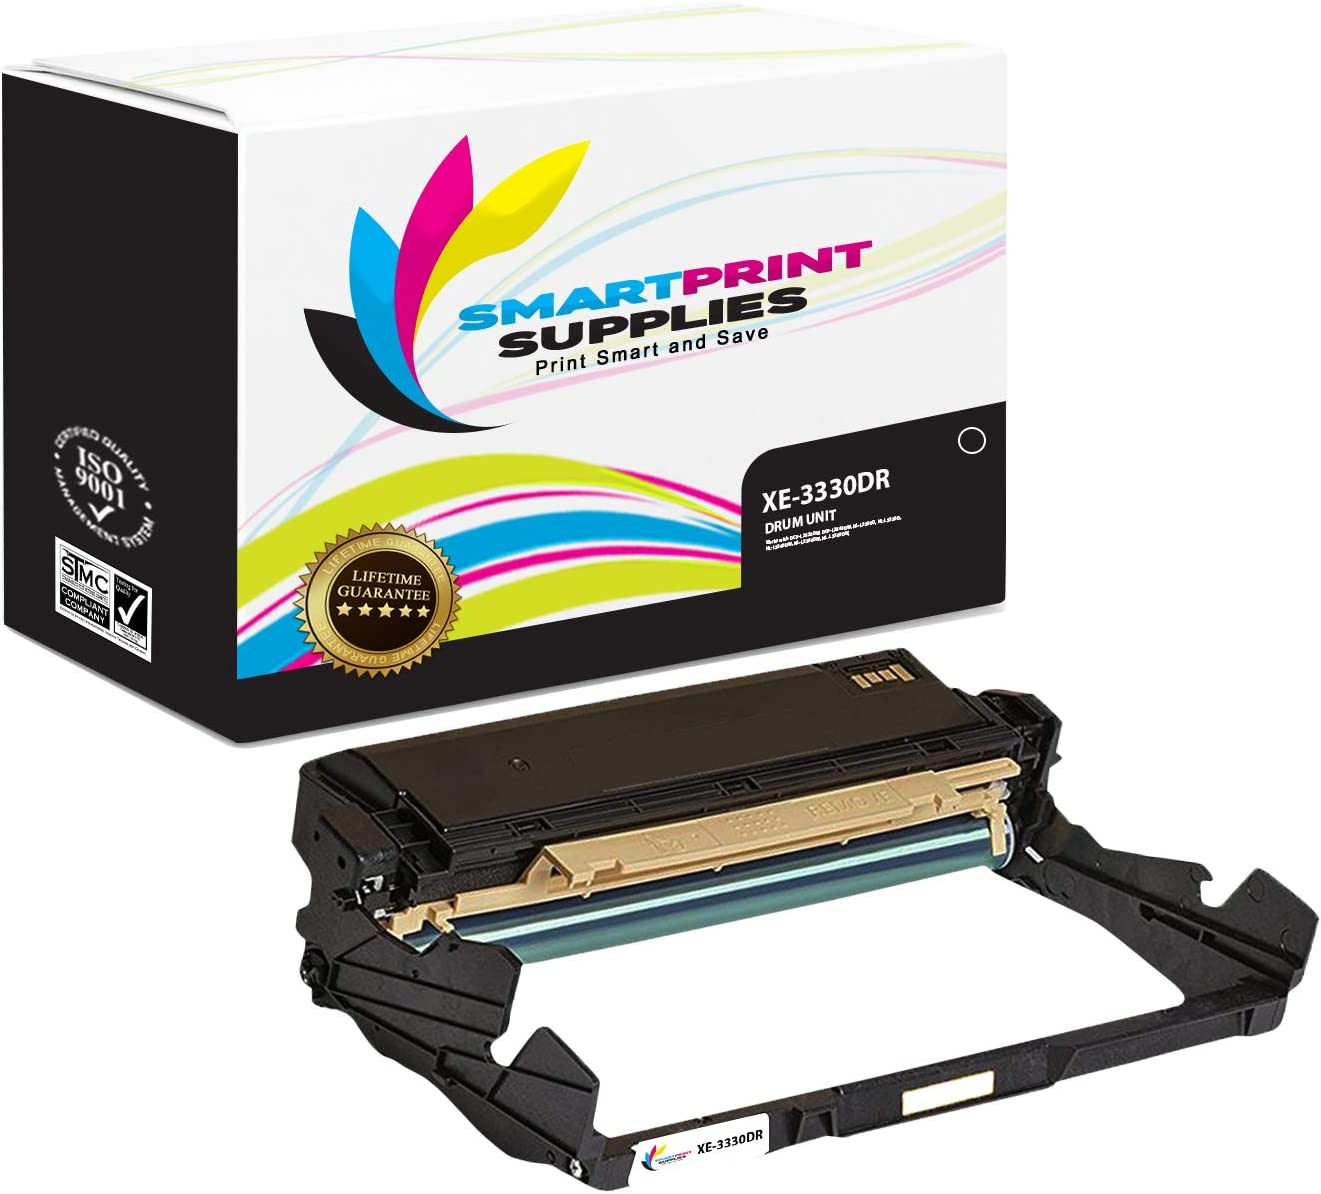 Smart Print Supplies Xerox 3330DR 101R00555 Black Compatible Drum Unit Replacement for Xerox Phaser 3330 Workcentre 3335 3345 Printers (30,000 Pages)